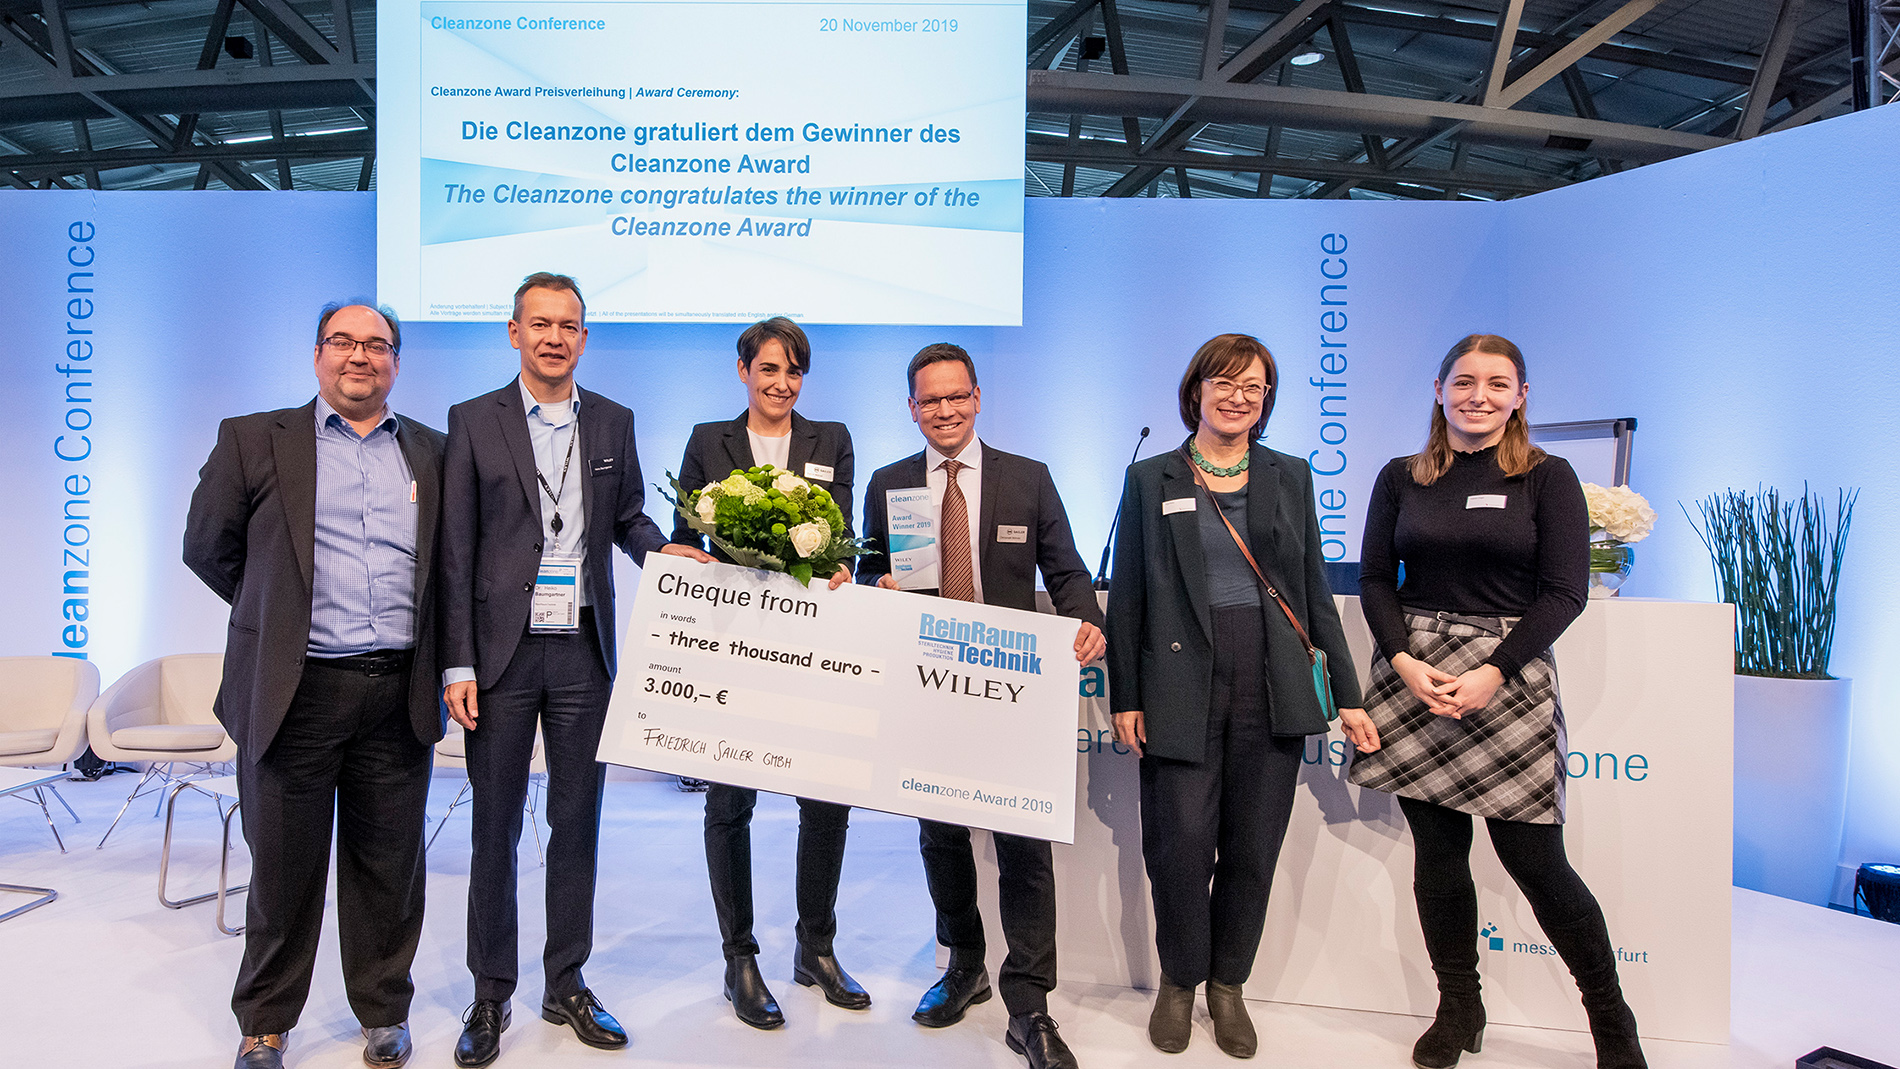 The presentation of the Cleanzone Award is always a crowd-puller. (Messe Frankfurt/Sandra Gätke)